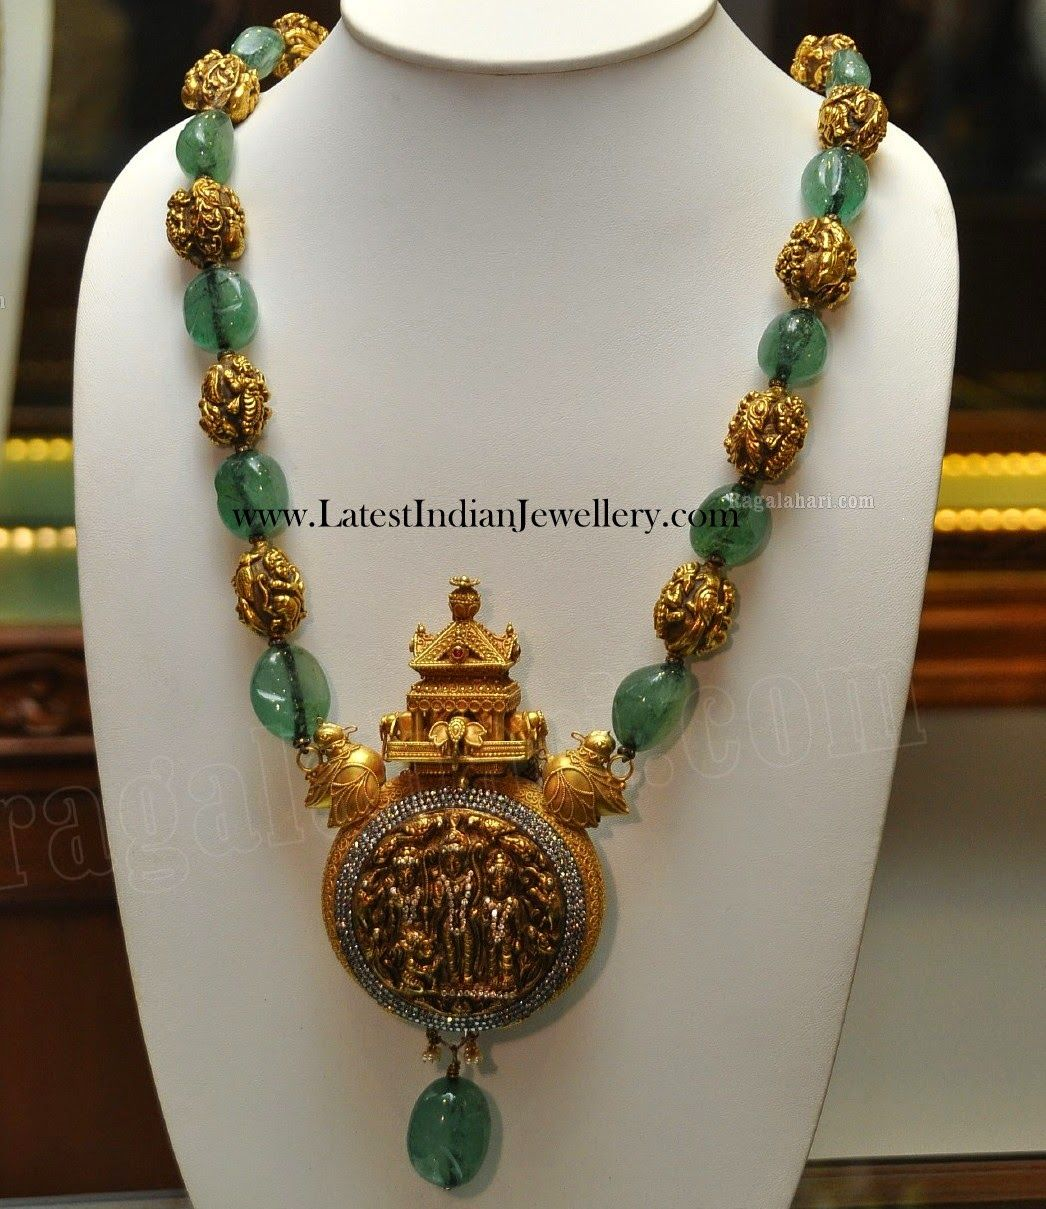 Emerald Bead Beads: Emerald And Antique Gold Beads Necklace